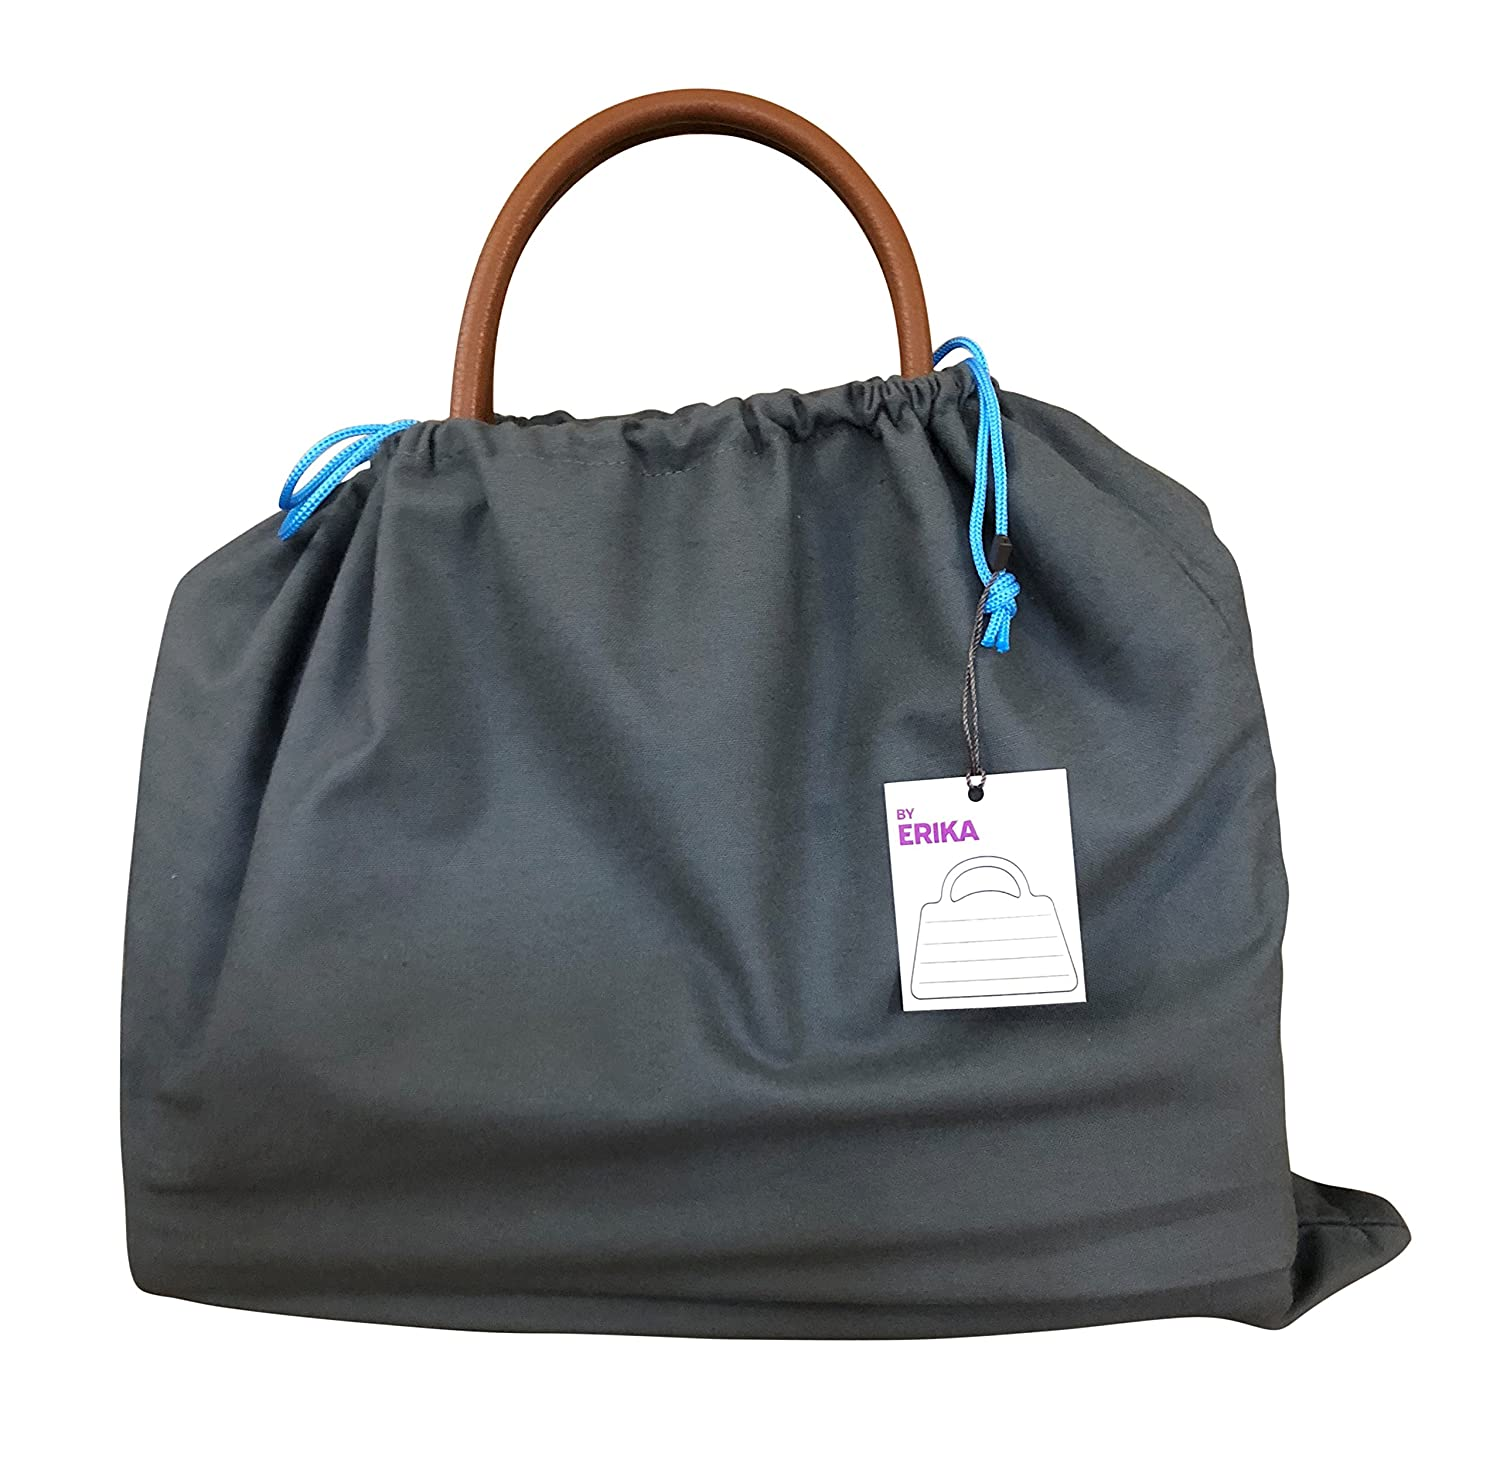 Details. Protect your handbags, purses, shoes with Flannel Dust Cover Bags. f26e57585a